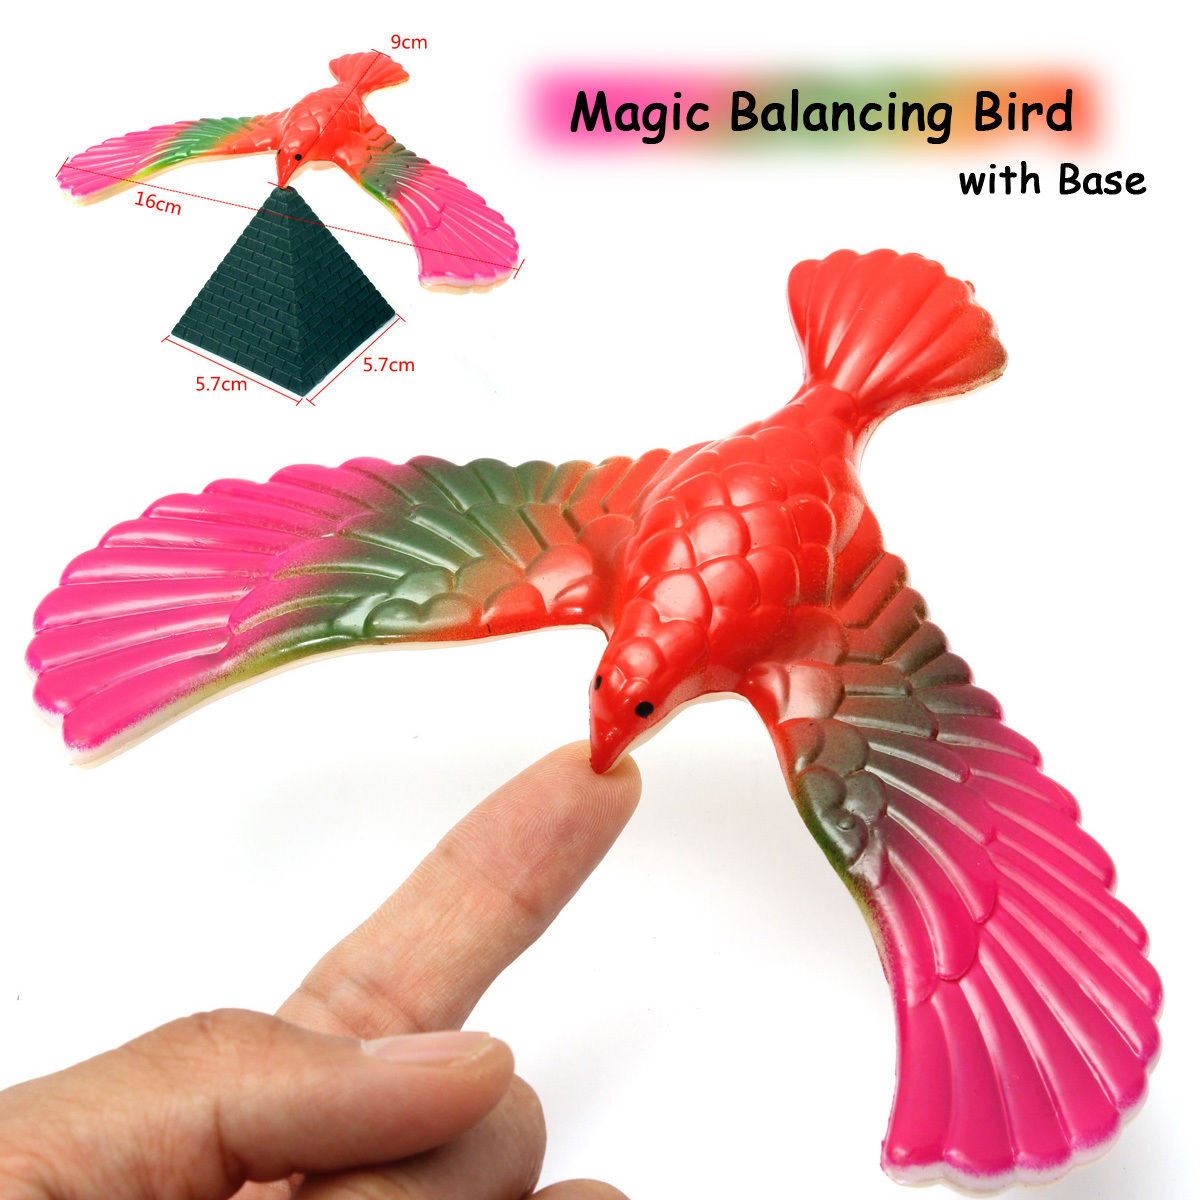 Free shipping Balance Eagle Bird Toy Magic Maintain Balance Home Office Fun Learning Gag Toy for Kid Gift High Quality